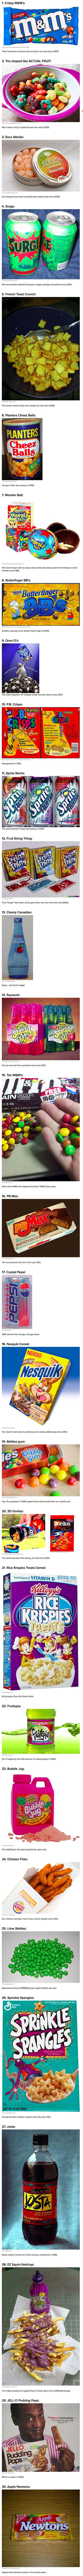 Here are some popular foods from the 90s you can not find in stores now. YES OH MY GOD